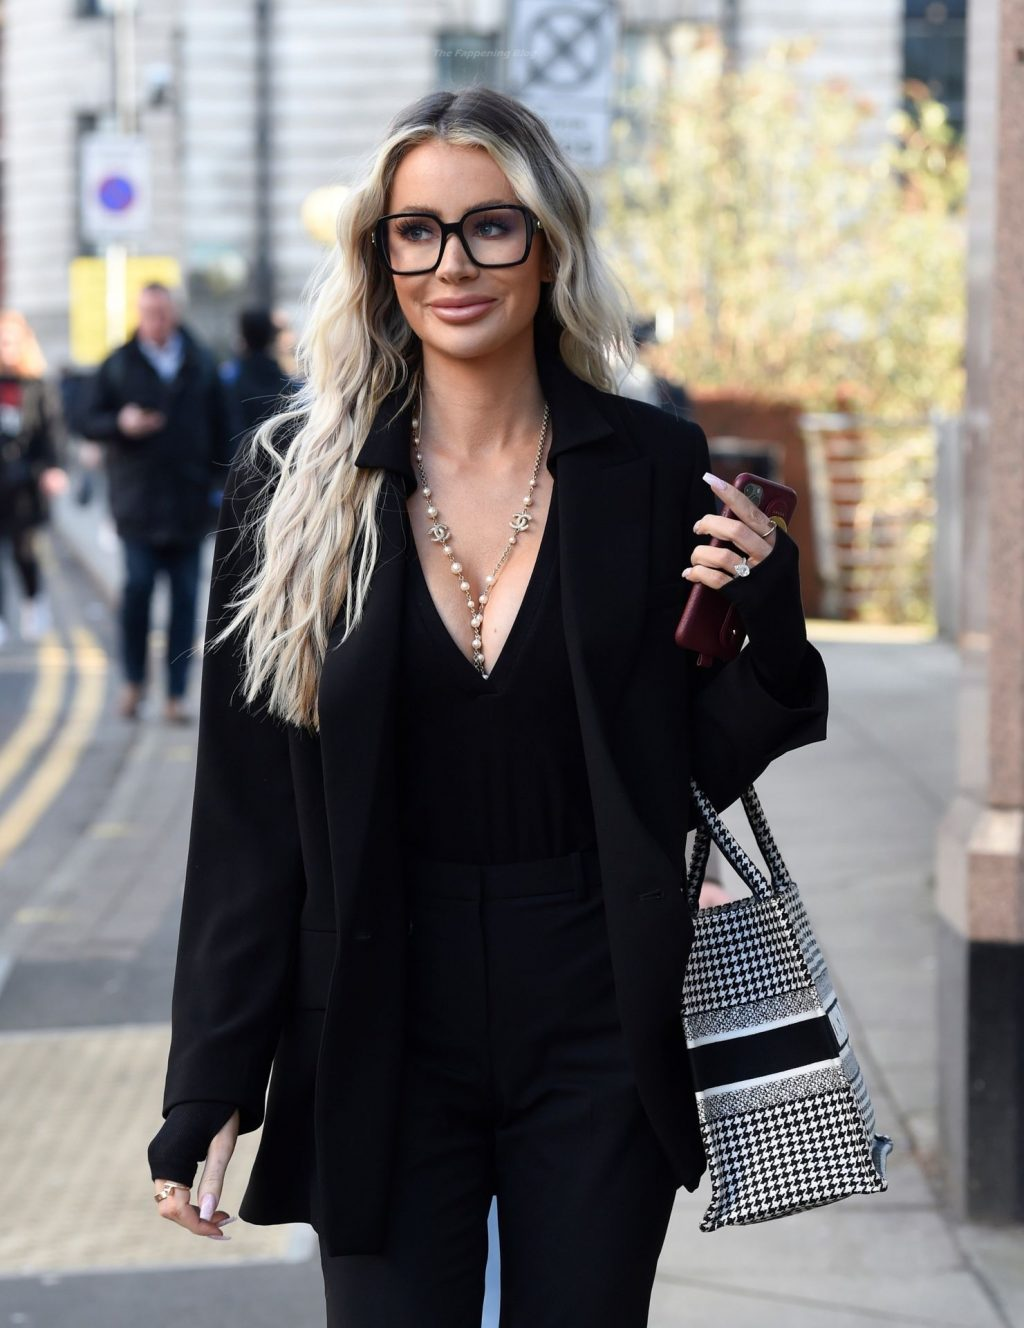 Busty Olivia Attwood is Filming at Touched Interiors in Manchester (37 Photos)